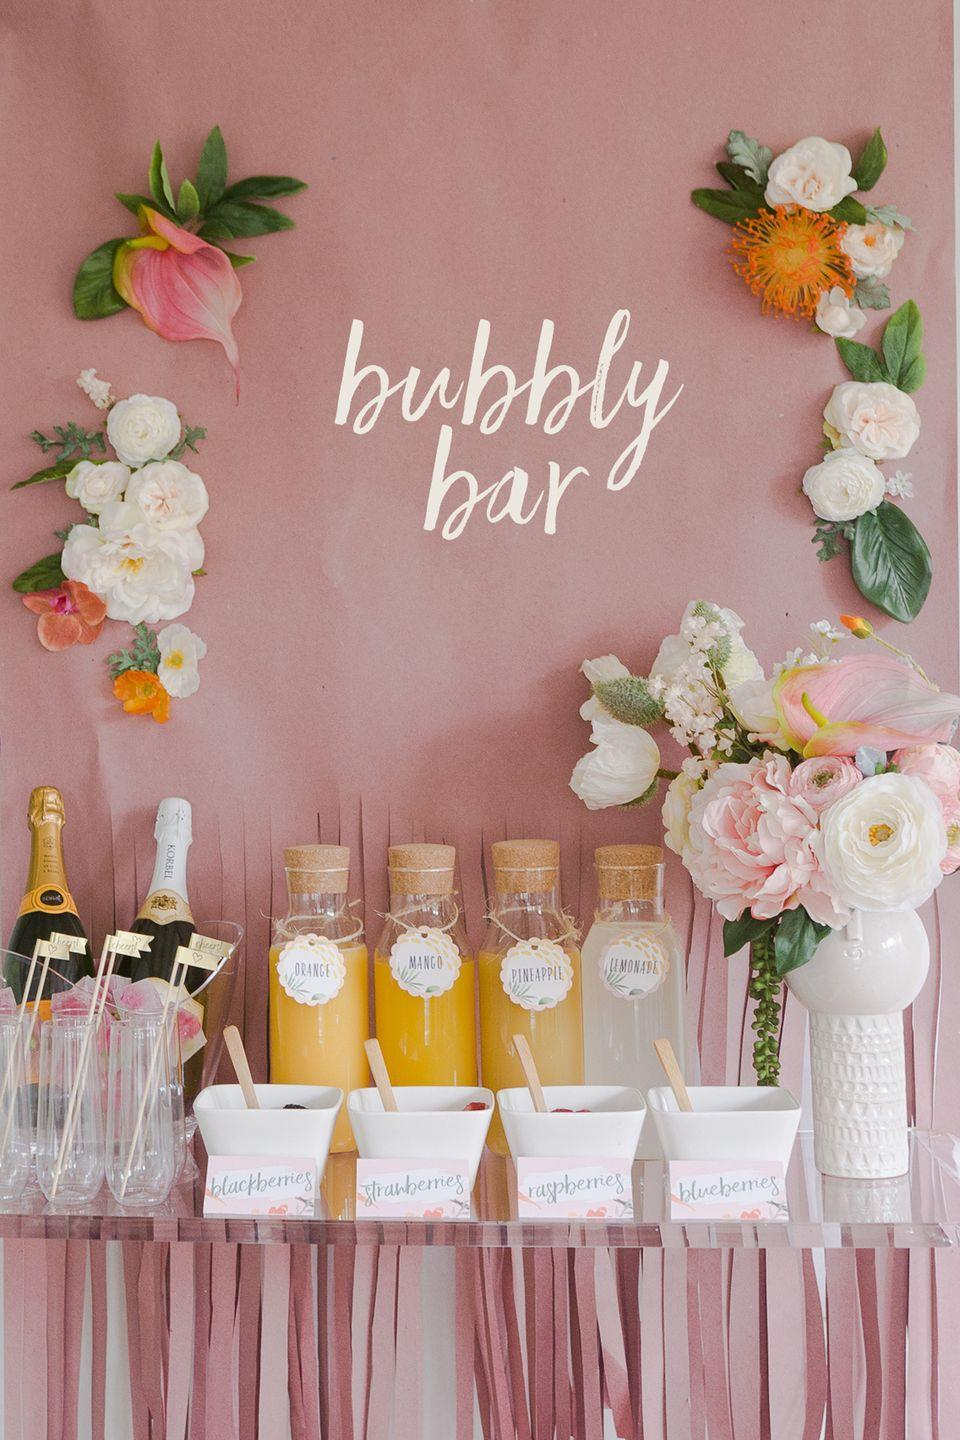 """<p>These labels help ID the juice blends and garnishes and are attached with colorful twine, clothespins, or decorative ribbon. </p><p>Get the tutorial at <a href=""""https://ruffledblog.com/mimosa-bar-bridal-shower-brunch-free-printables/"""" rel=""""nofollow noopener"""" target=""""_blank"""" data-ylk=""""slk:Ruffled"""" class=""""link rapid-noclick-resp"""">Ruffled</a>.</p>"""